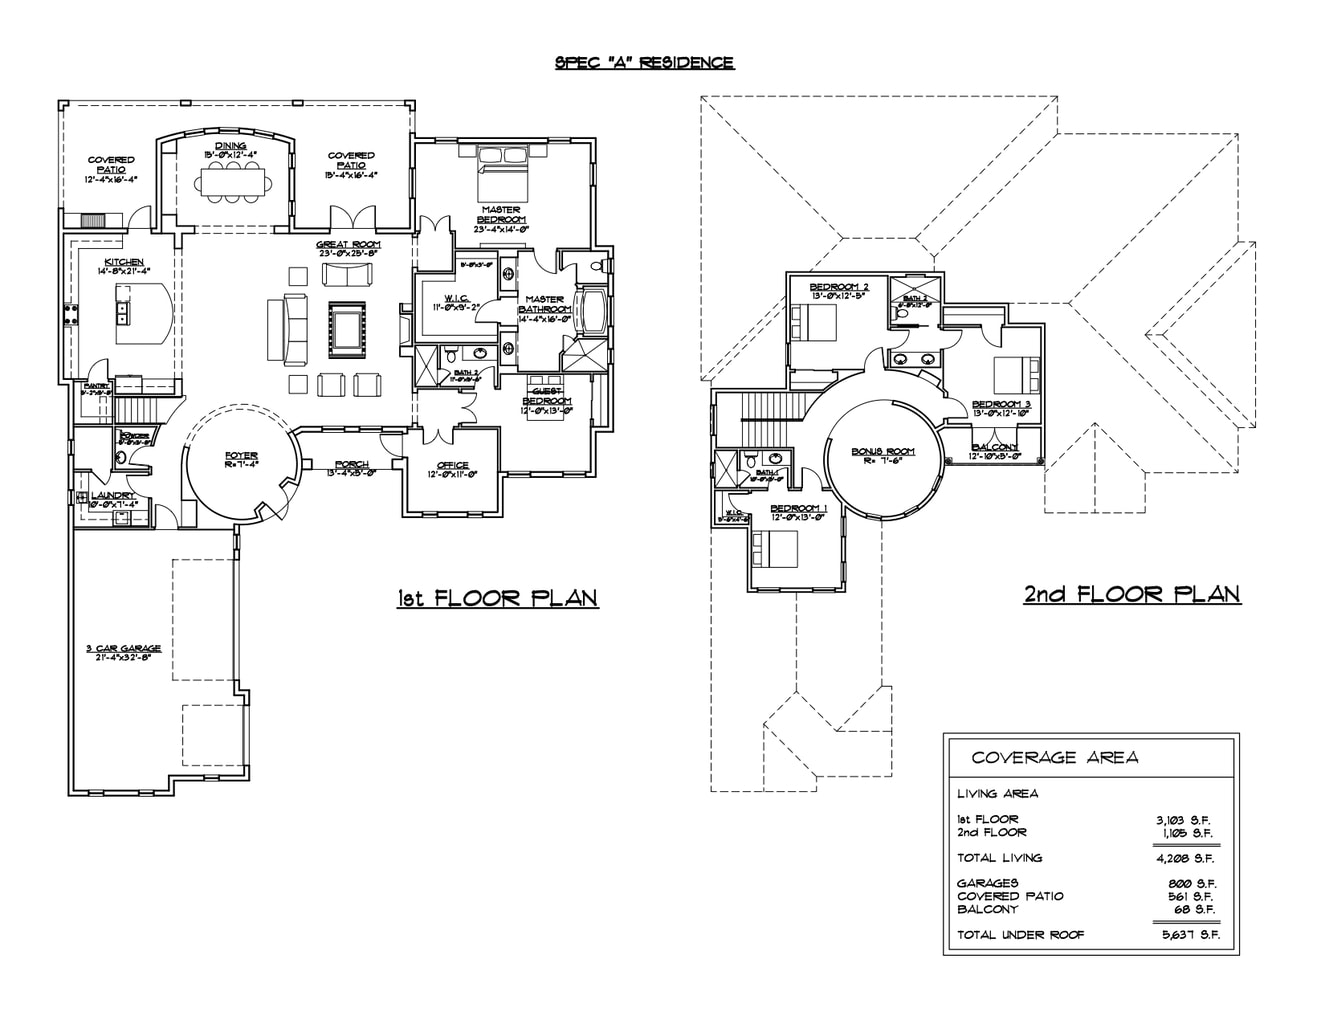 How to Squeeze 6000 Square Feet Into a 4000 Square Foot Home - Cornerstone Homes Floor Plans